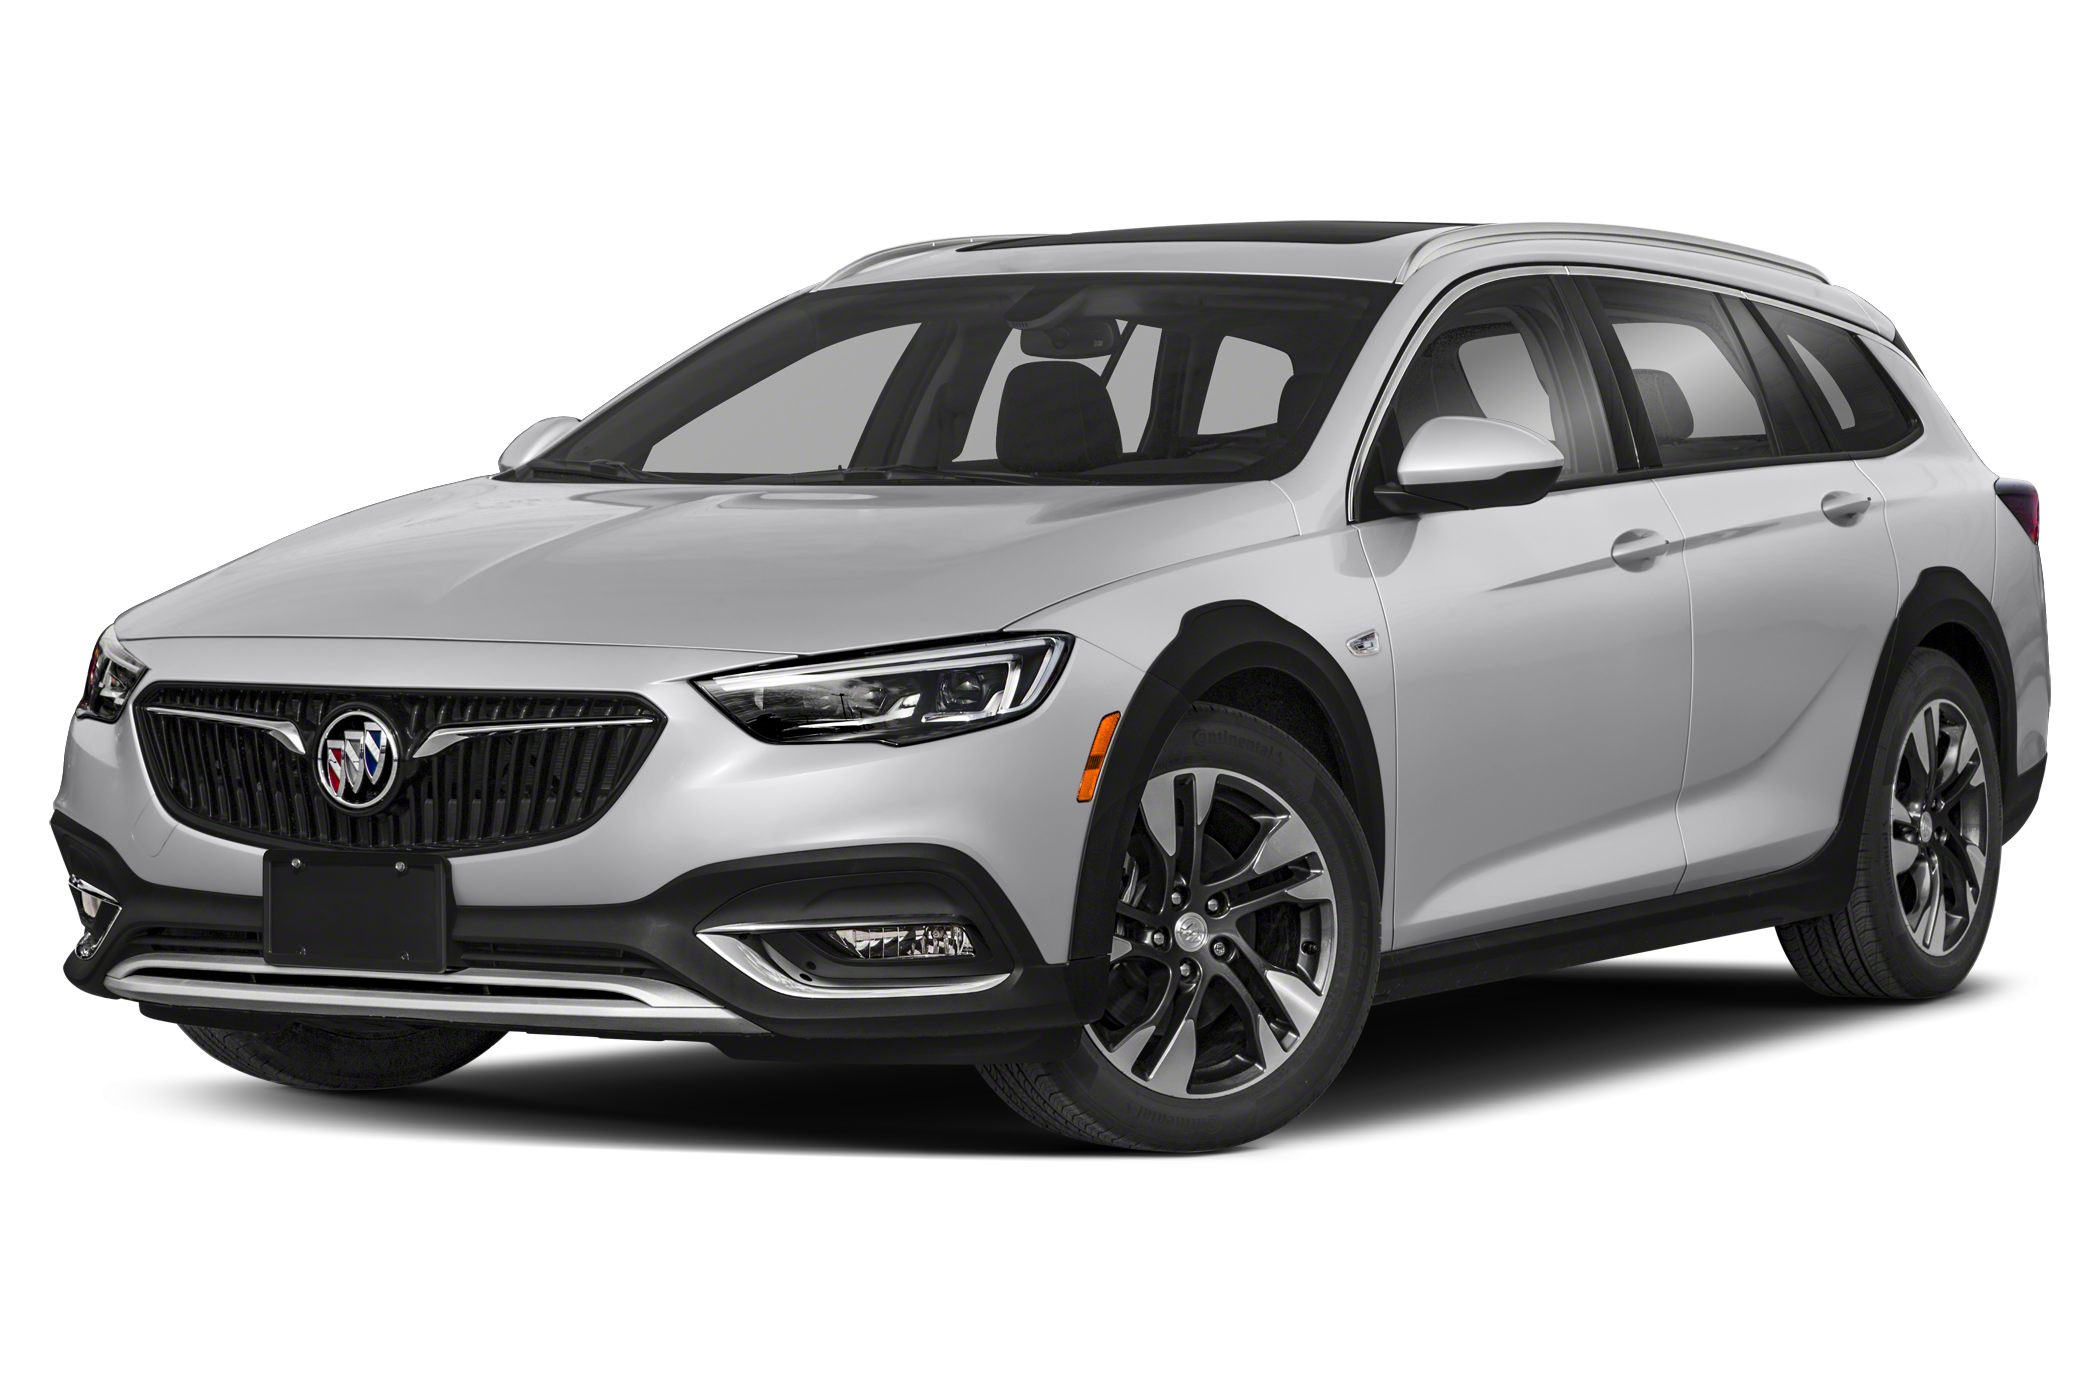 2018 Buick Regal TourX Essence With such great unique features like a push button start remote st